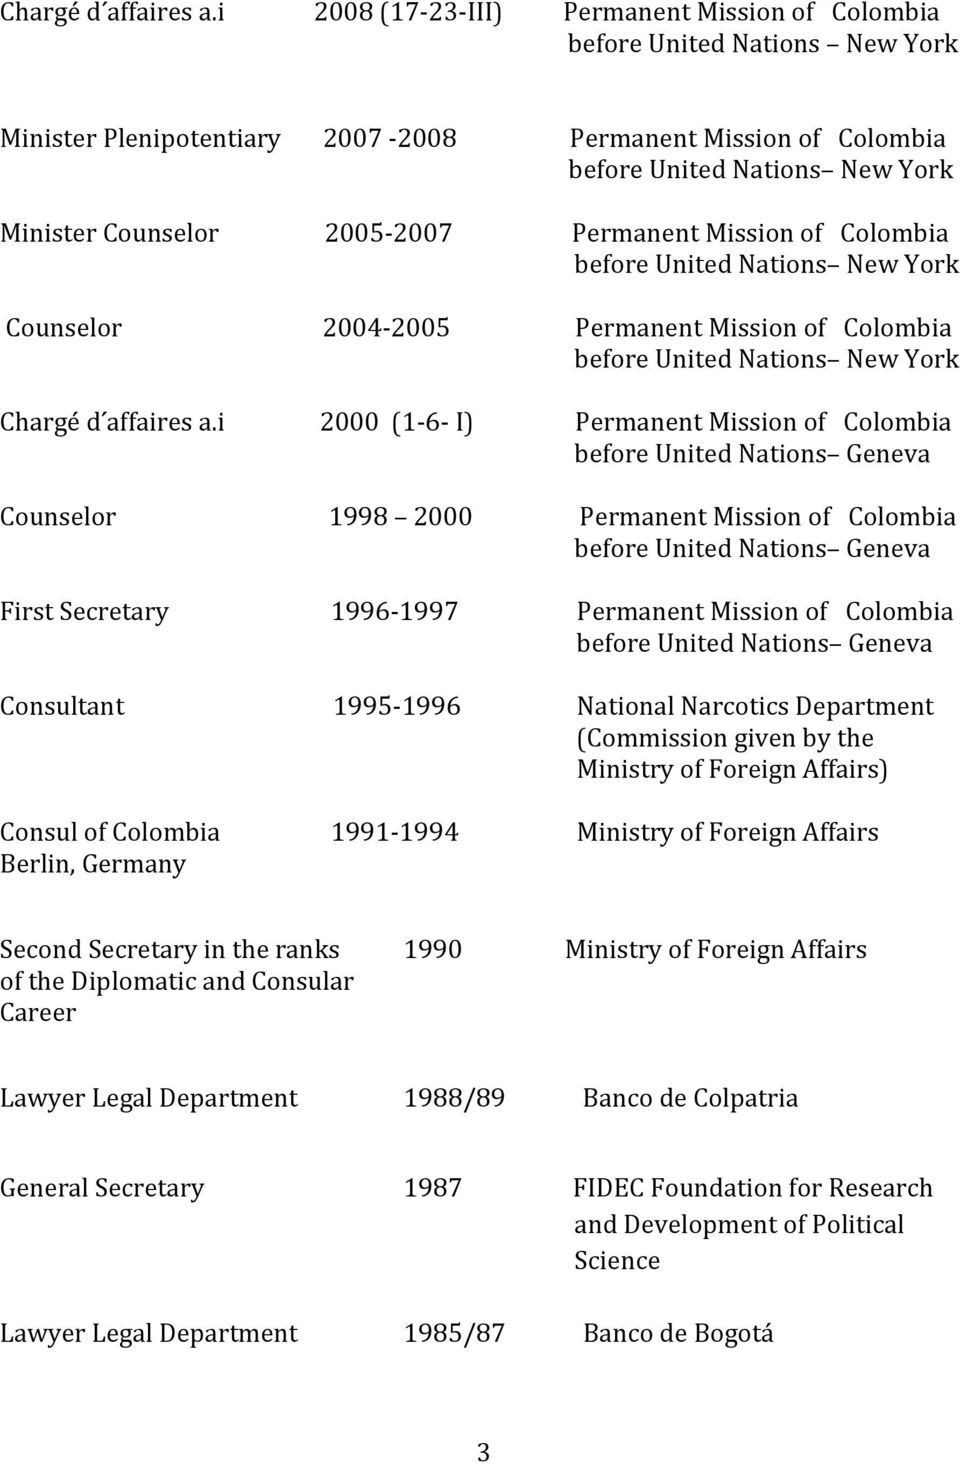 before United Nations Geneva Counselor 1998 2000 Permanent Mission of Colombia before United Nations Geneva First Secretary 1996-1997 Permanent Mission of Colombia before United Nations Geneva